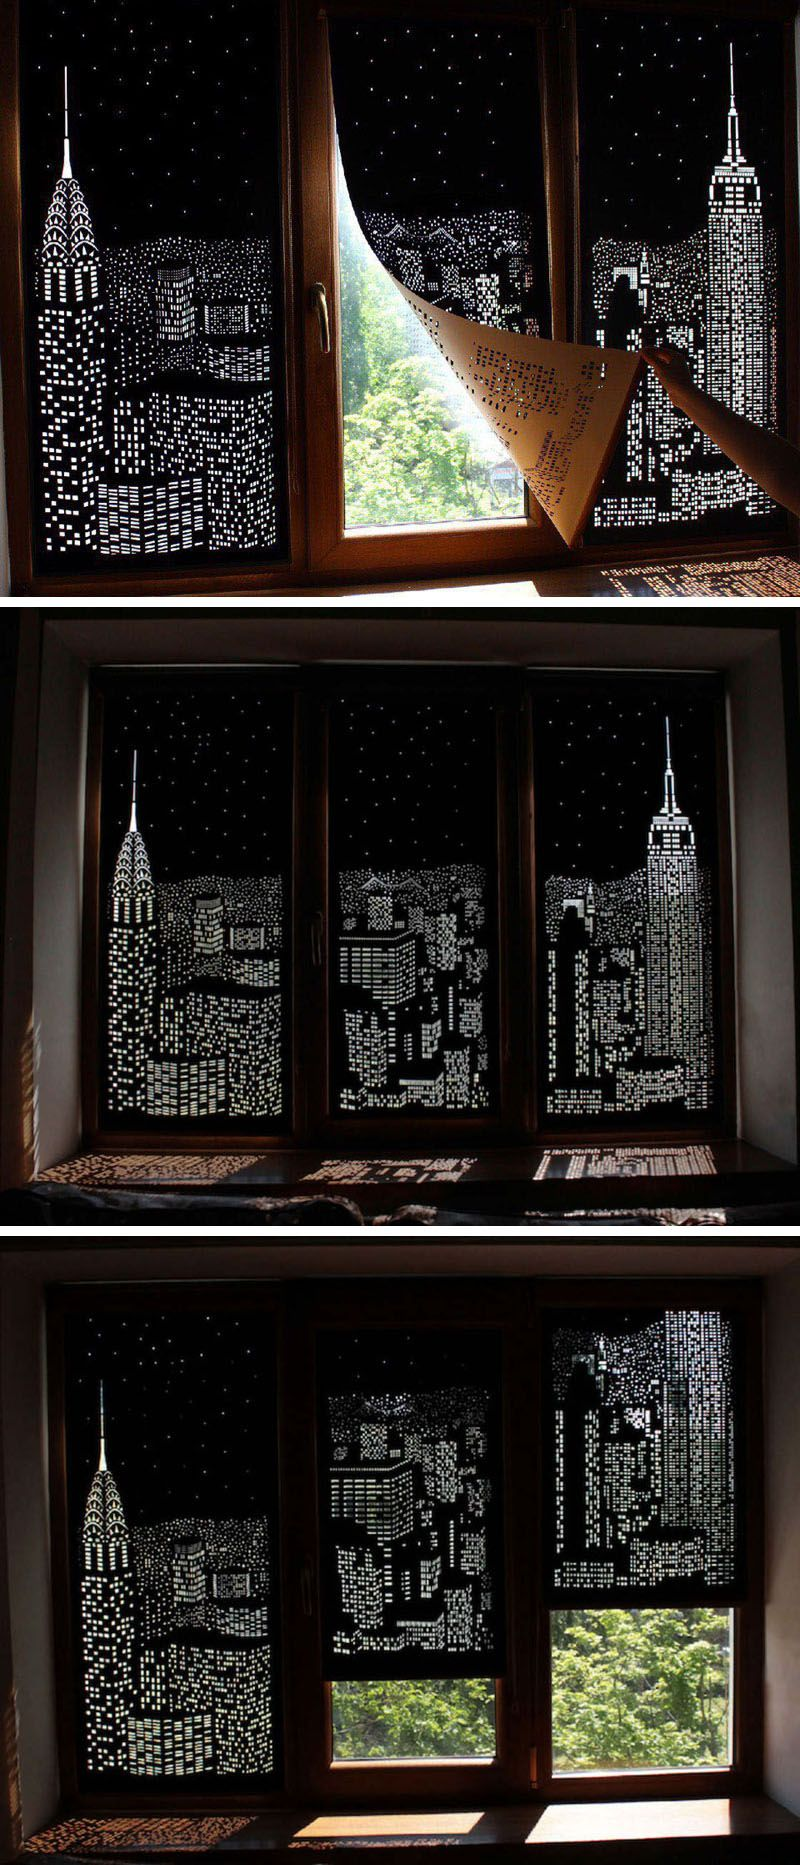 These blackout blinds provide a city view when closed city